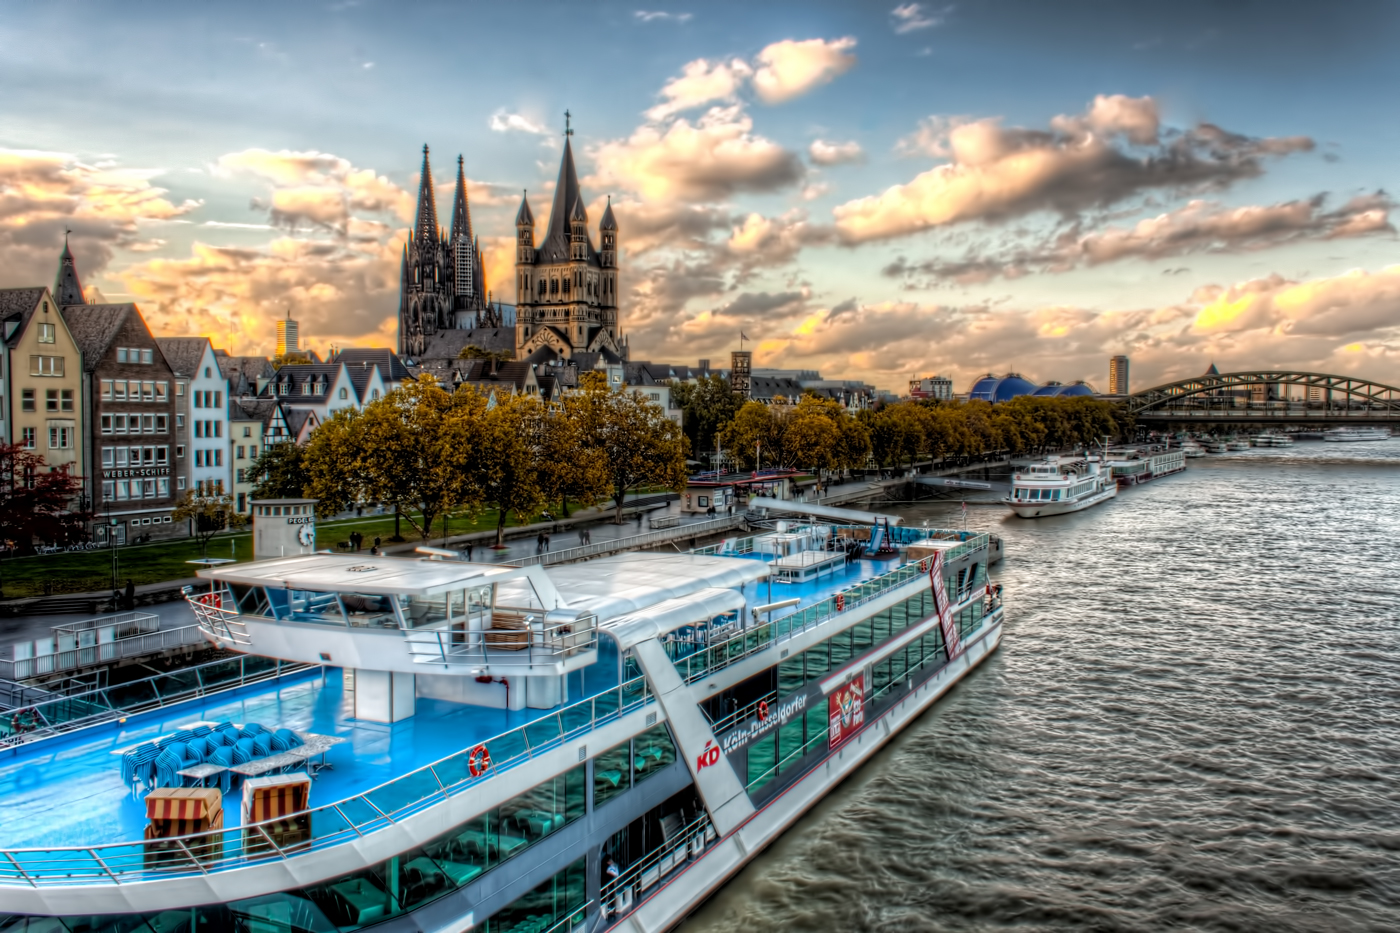 cologne germany weather forecast 10 days - 1200×675